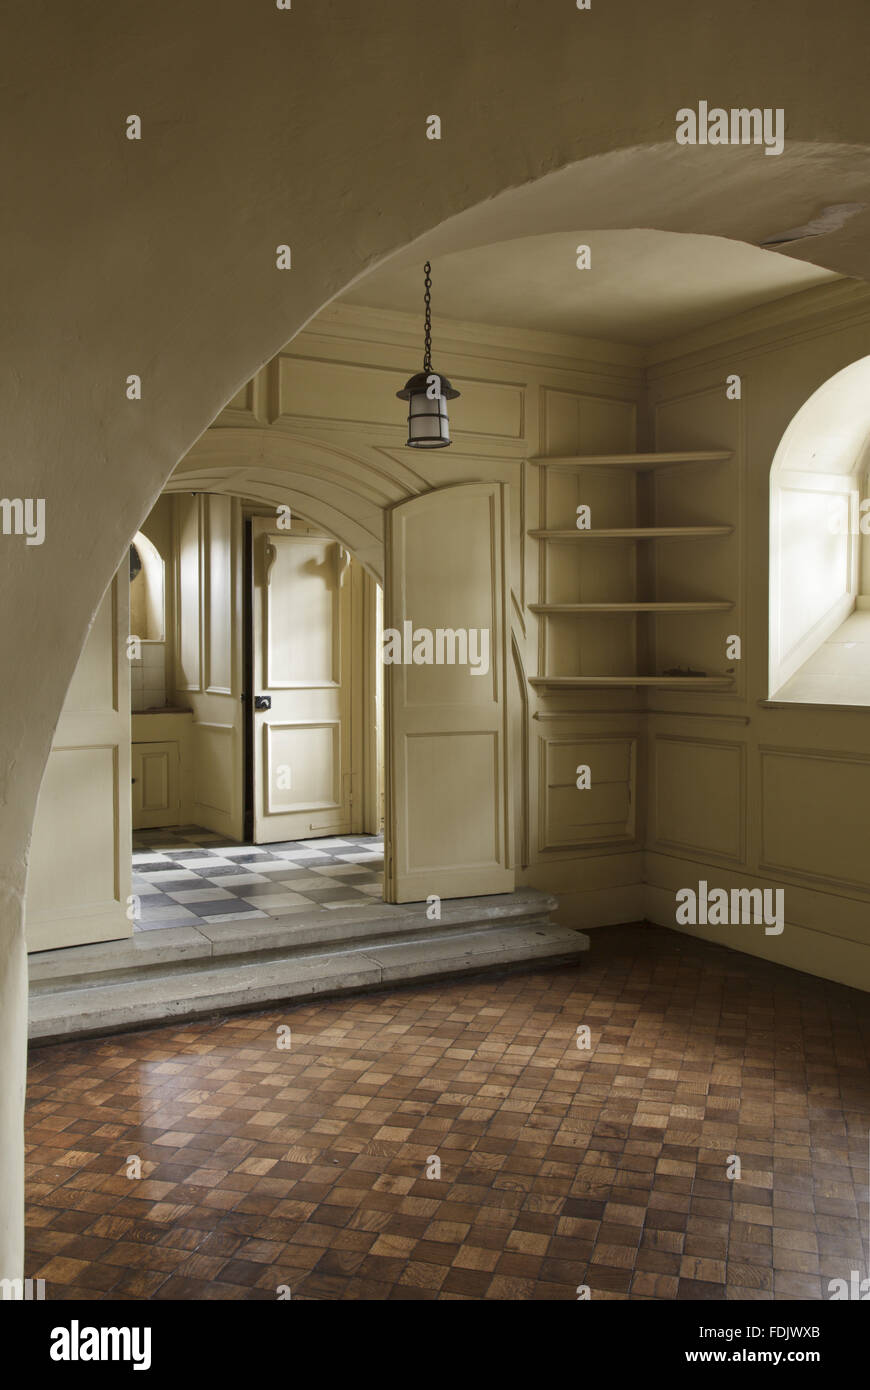 The Duchess's Bathroom at Ham House, Richmond-upon-Thames. 'The Bathing Roome' of the Duchess of Lauderdale - Stock Image